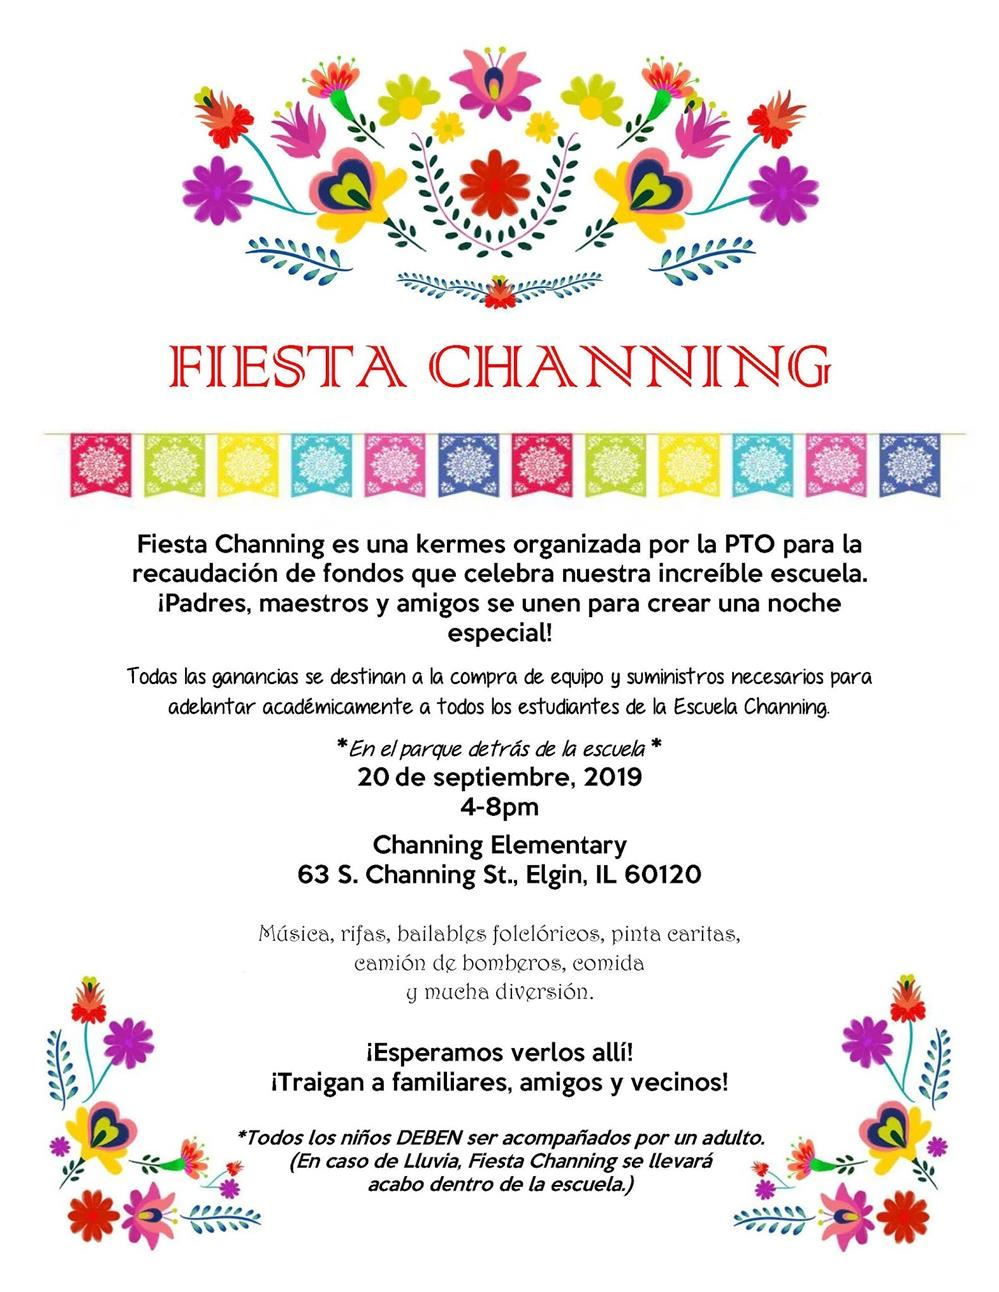 Fiesta Channing Flyer in Spanish